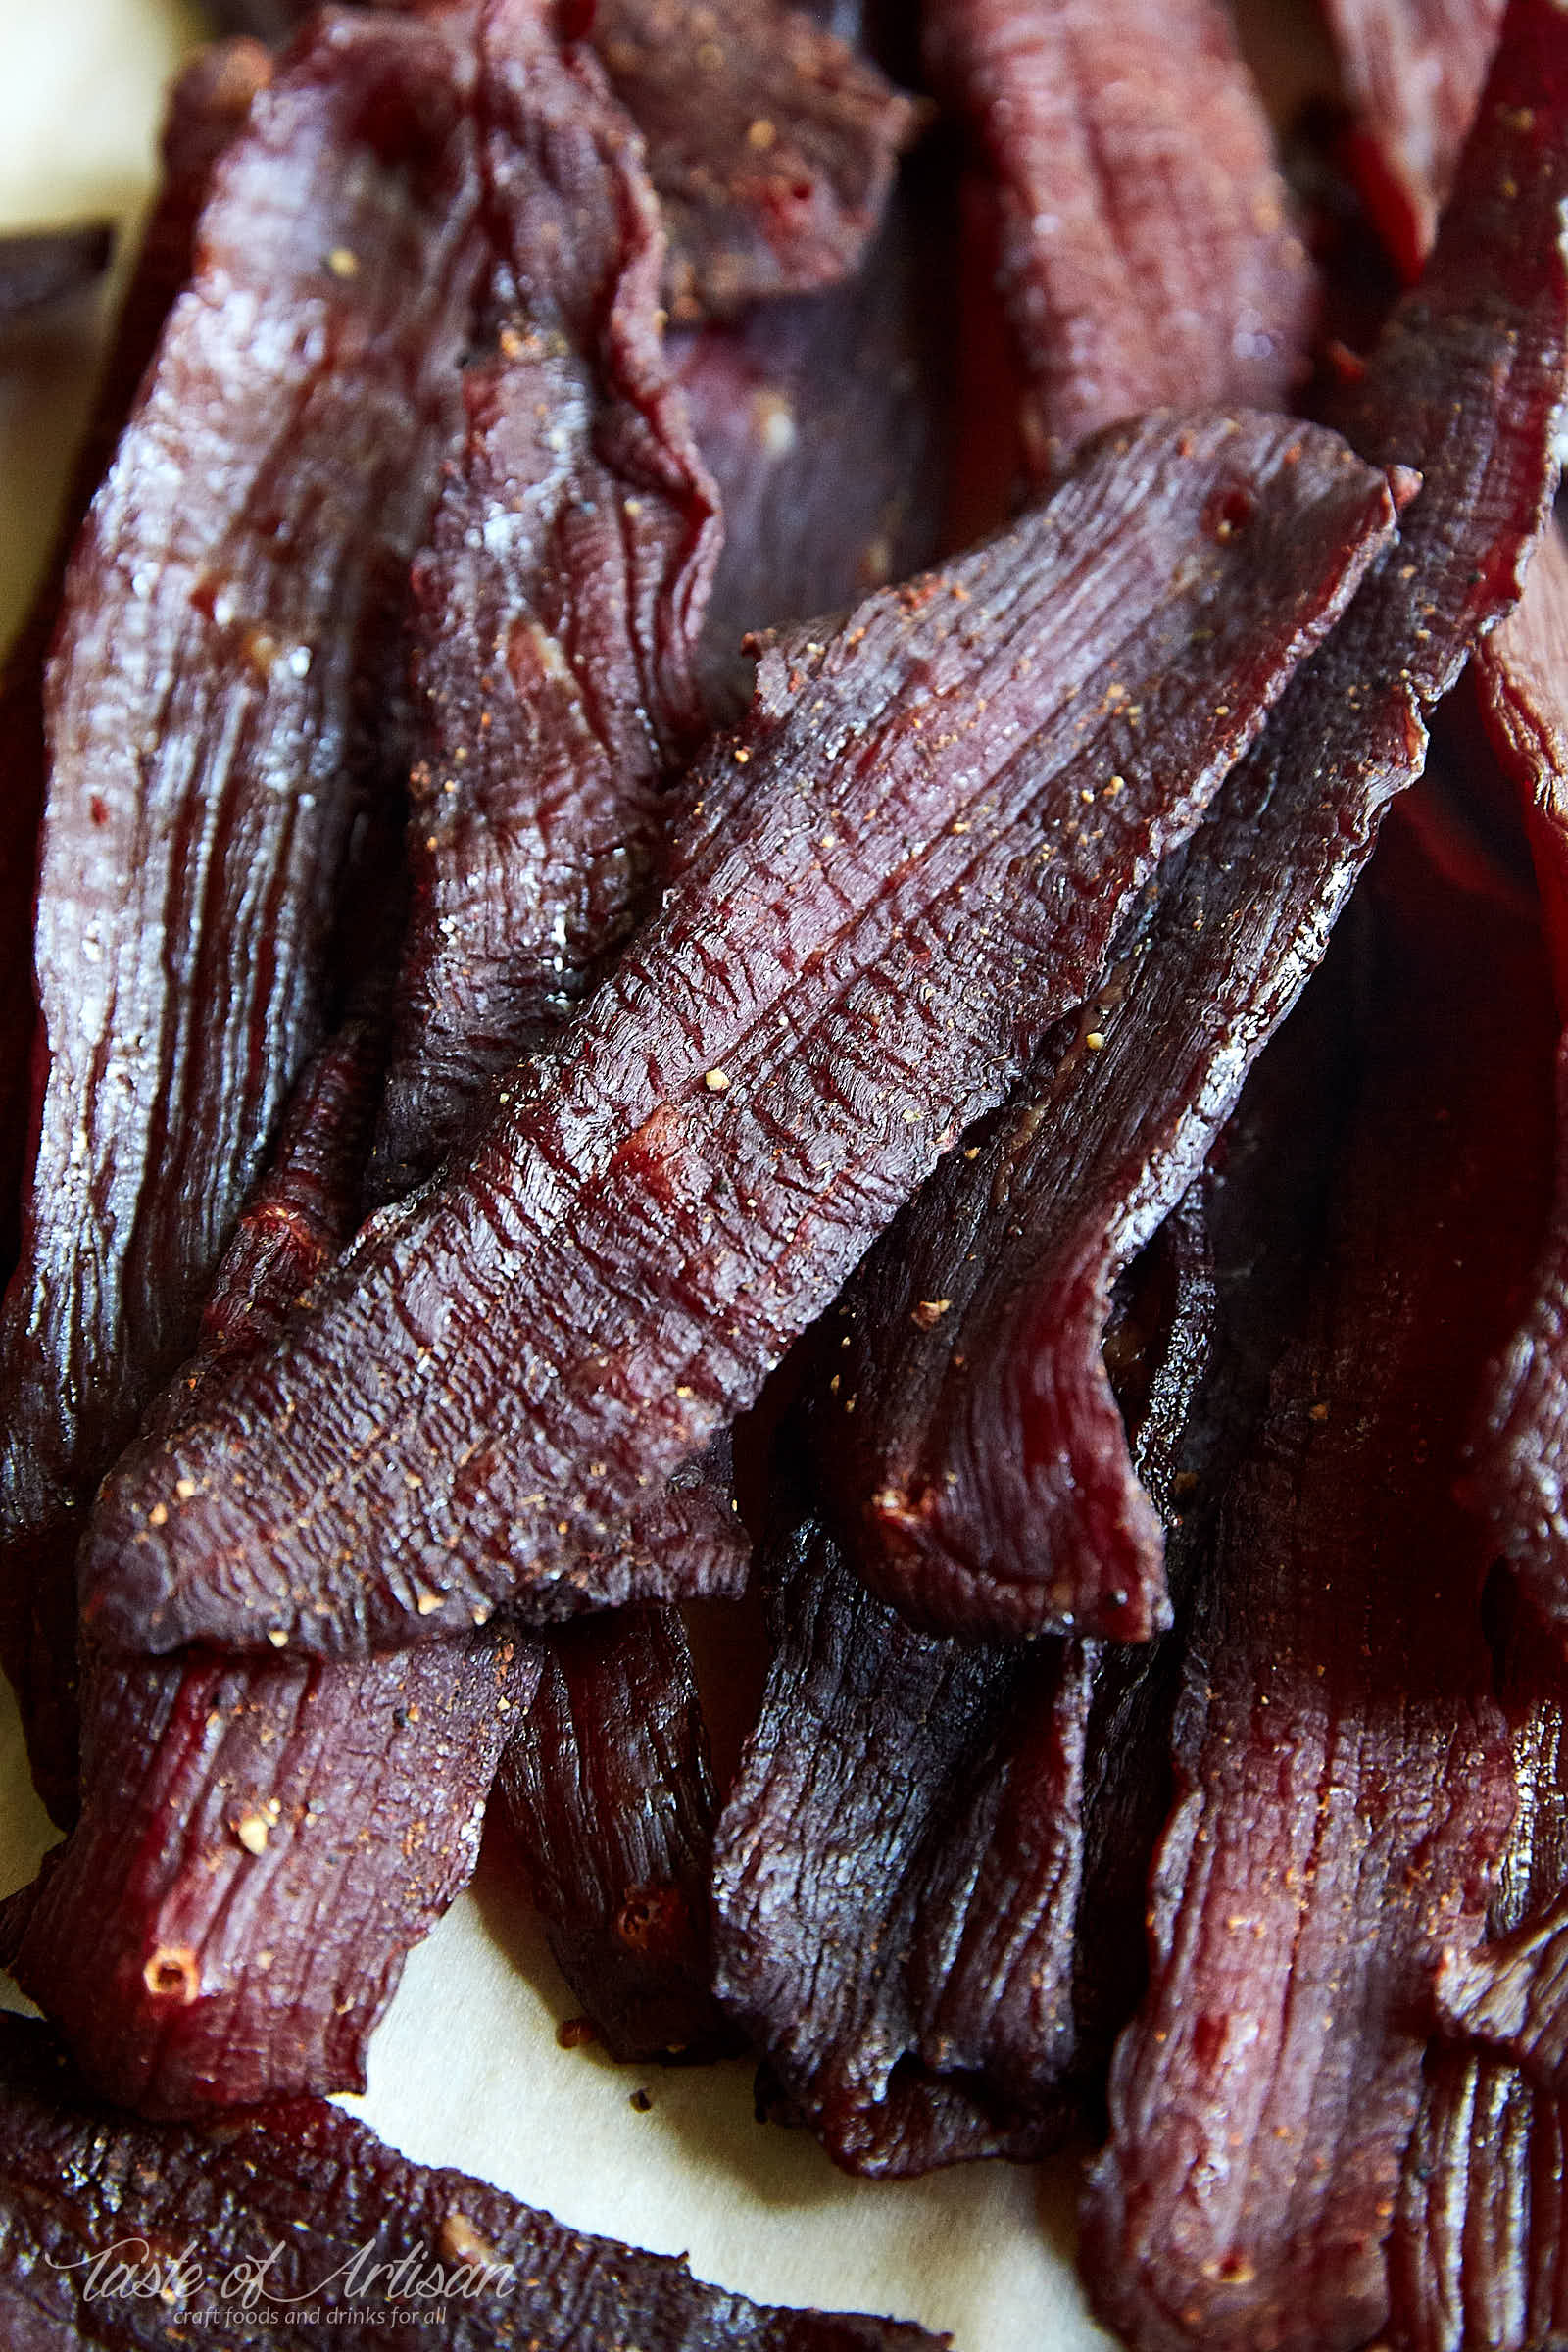 Beef jerky made in the oven - delicious, chewy and addictive. | Taste of Artisan